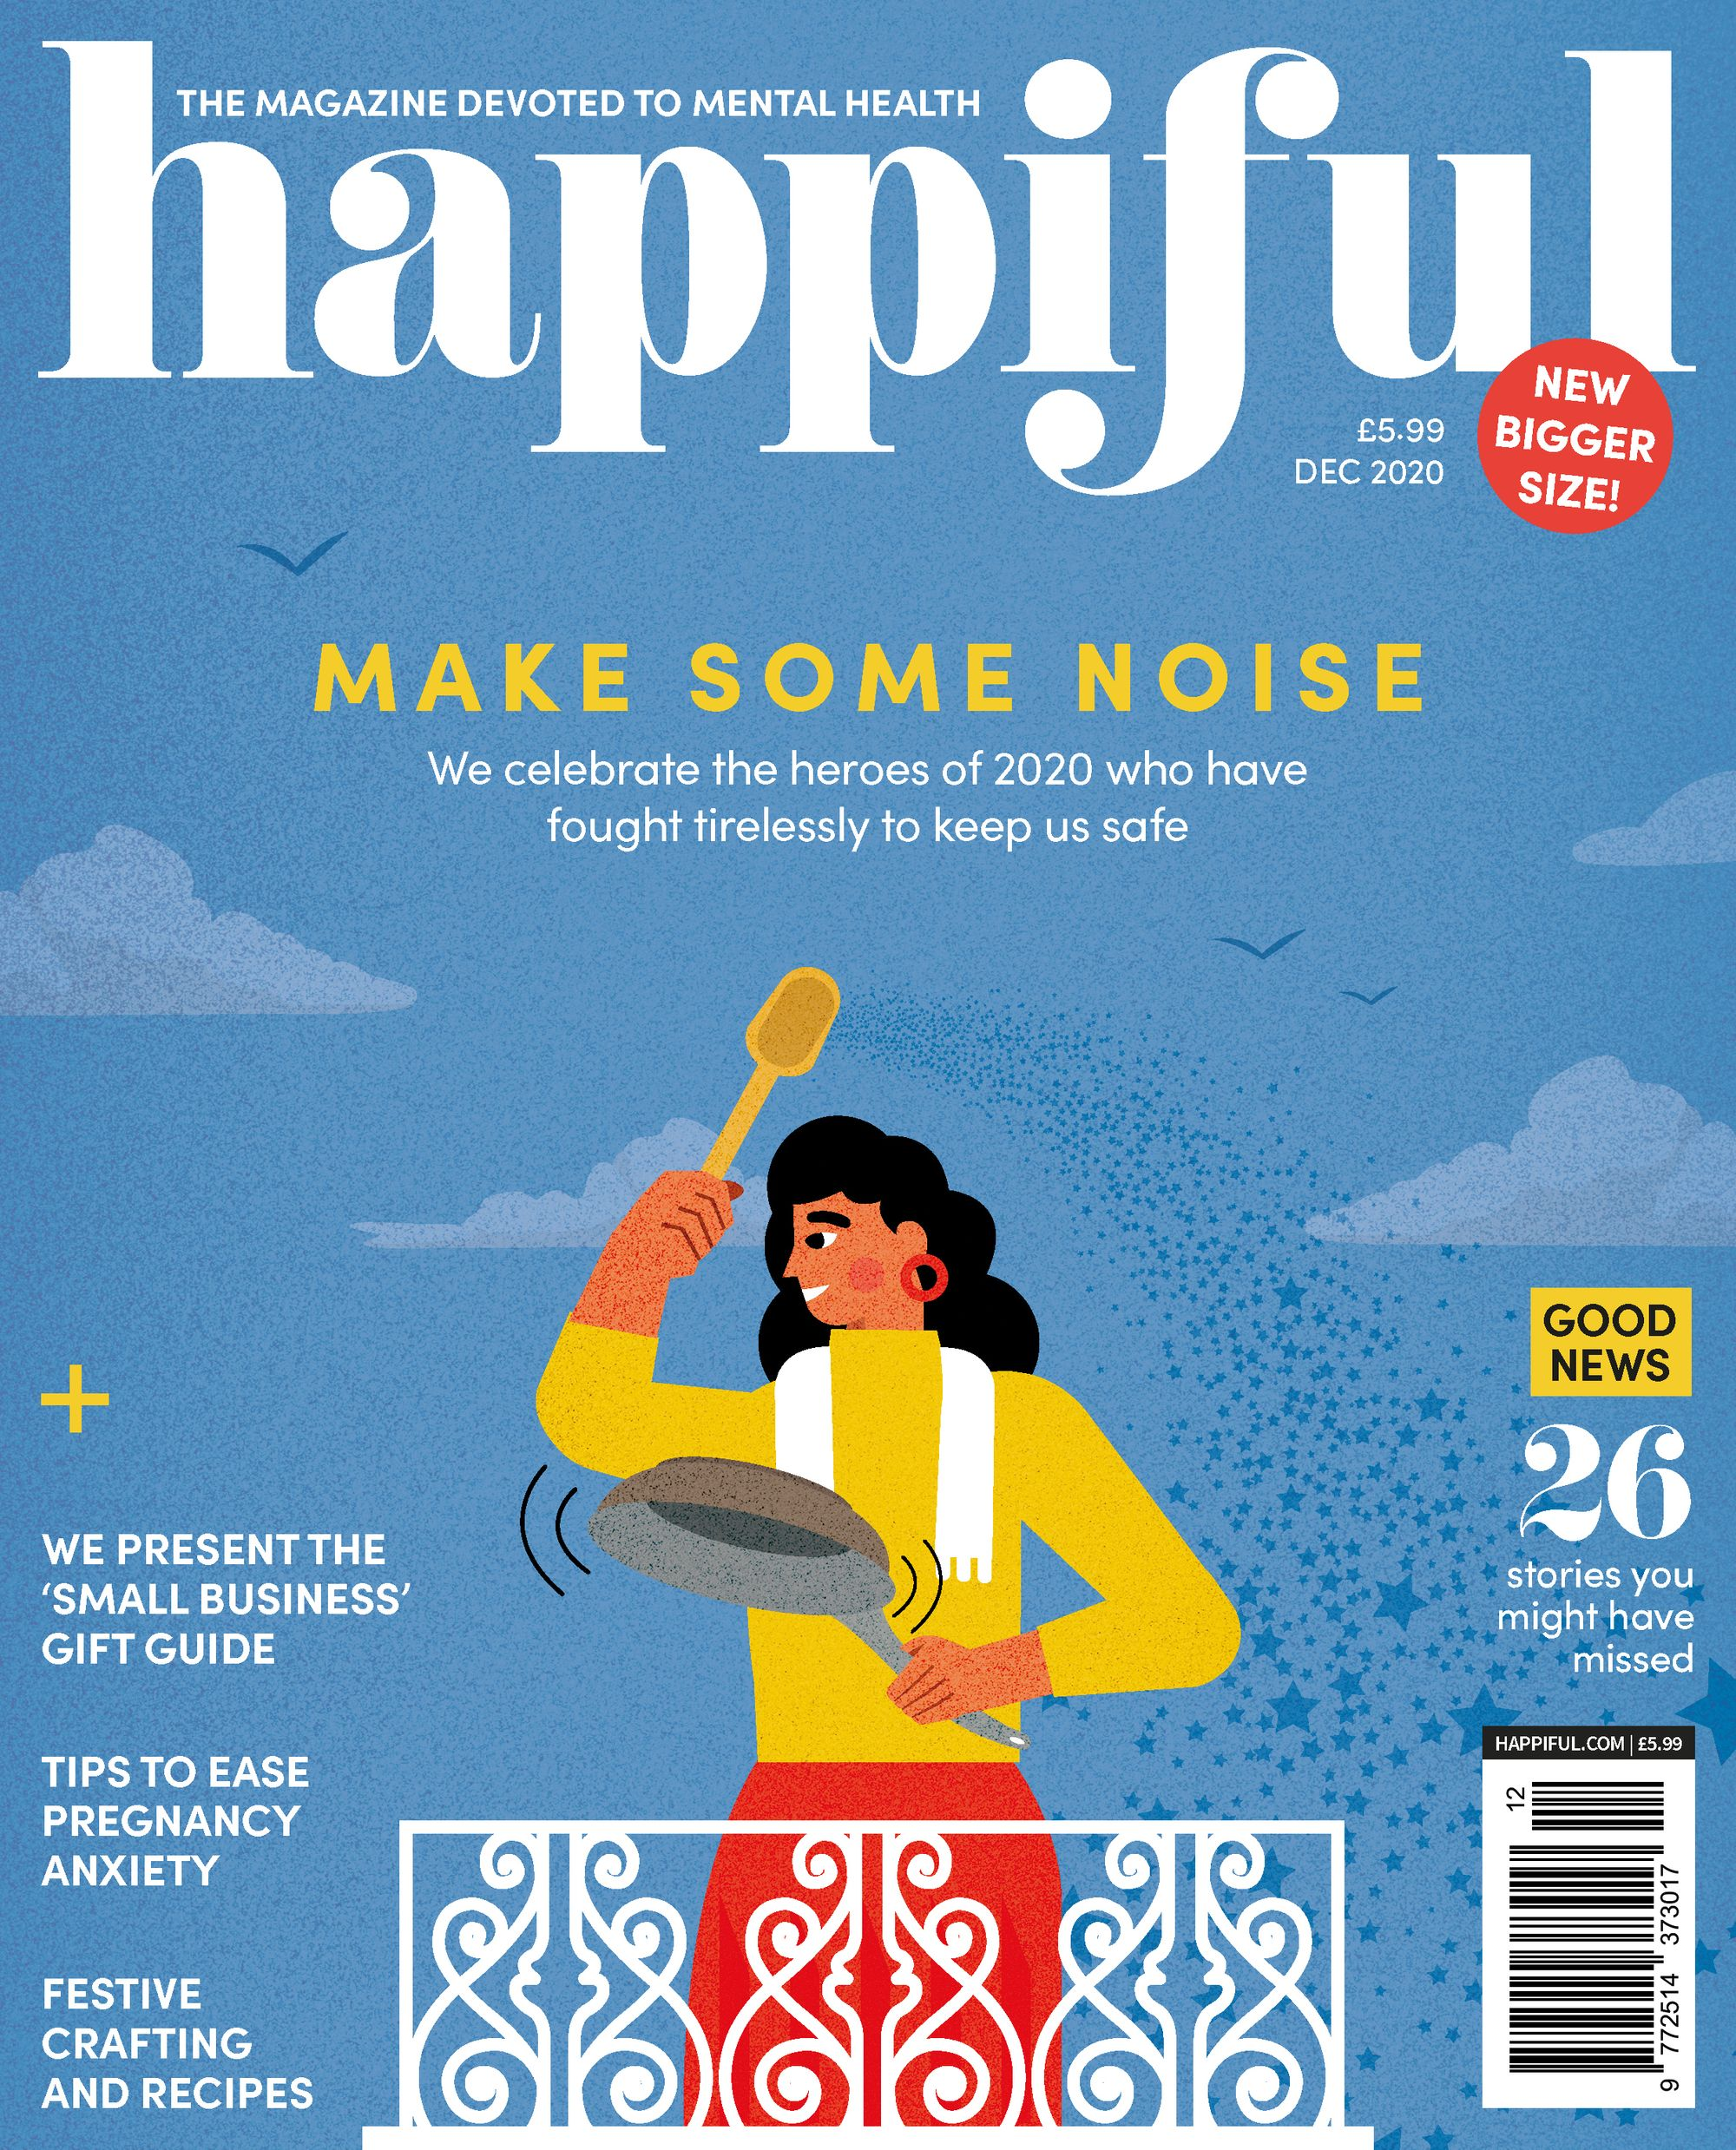 Happiful magazine: The story so far